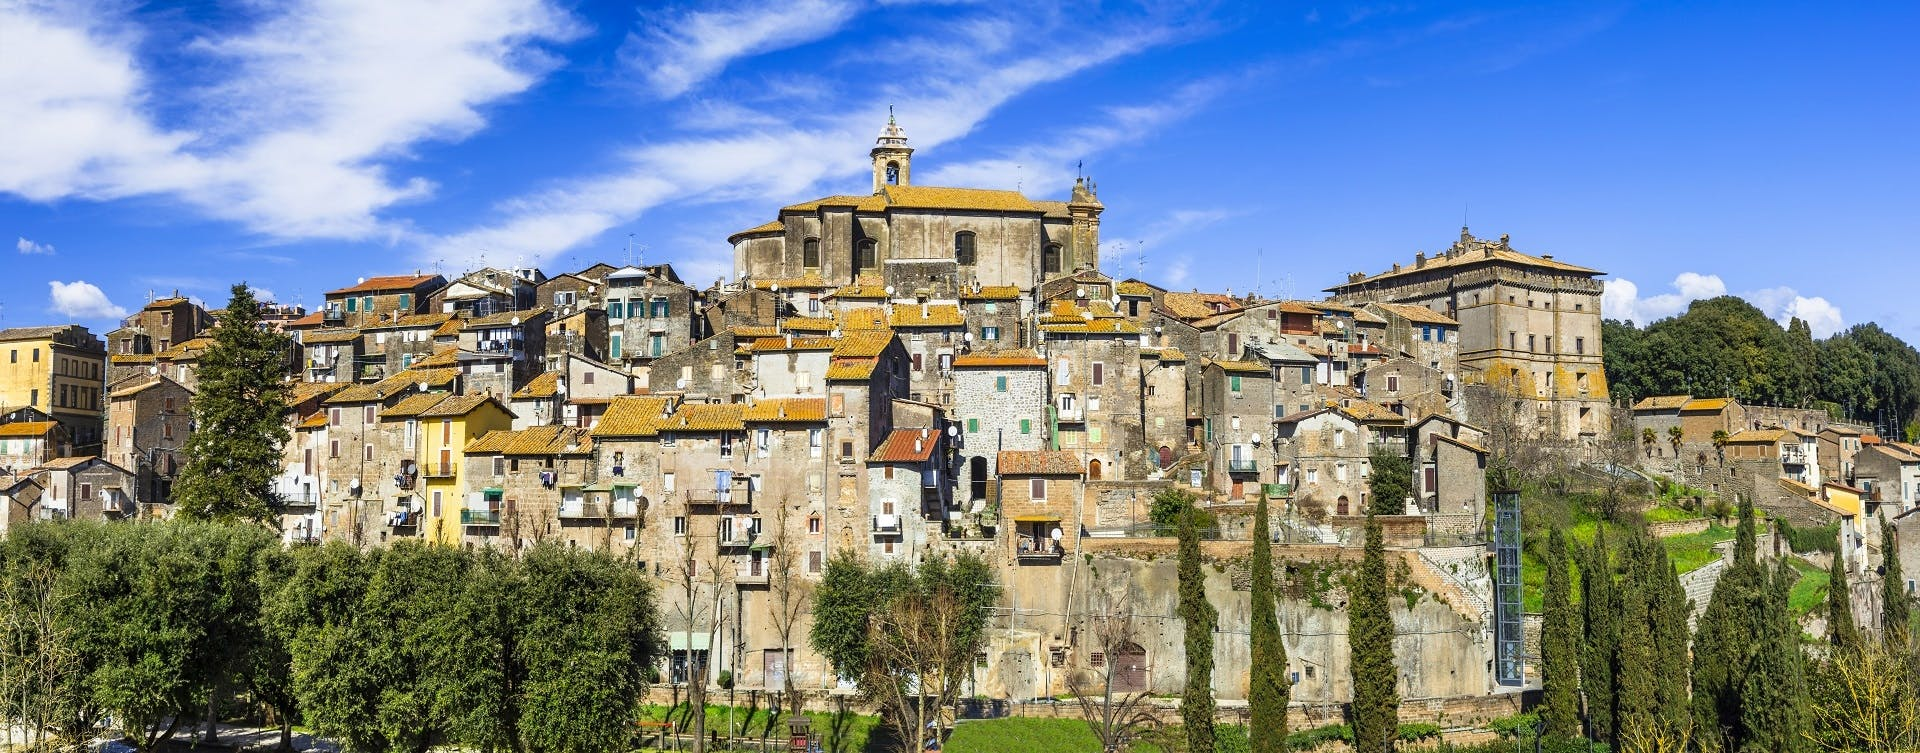 Things to do in Viterbo Museums and attractions musement